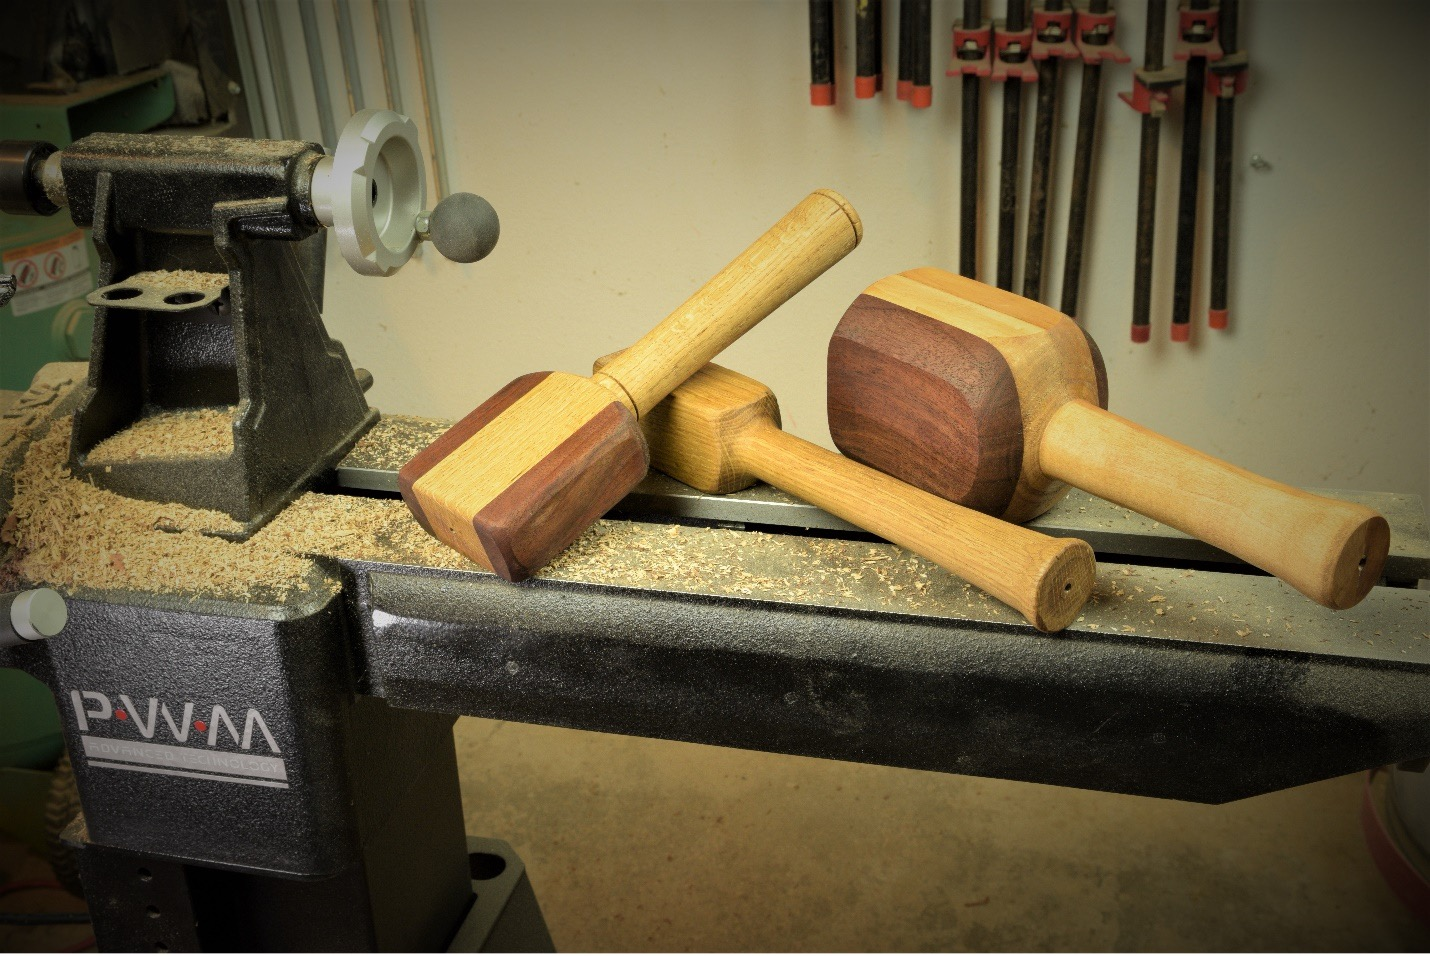 finishing touches on the mallets and adding stain